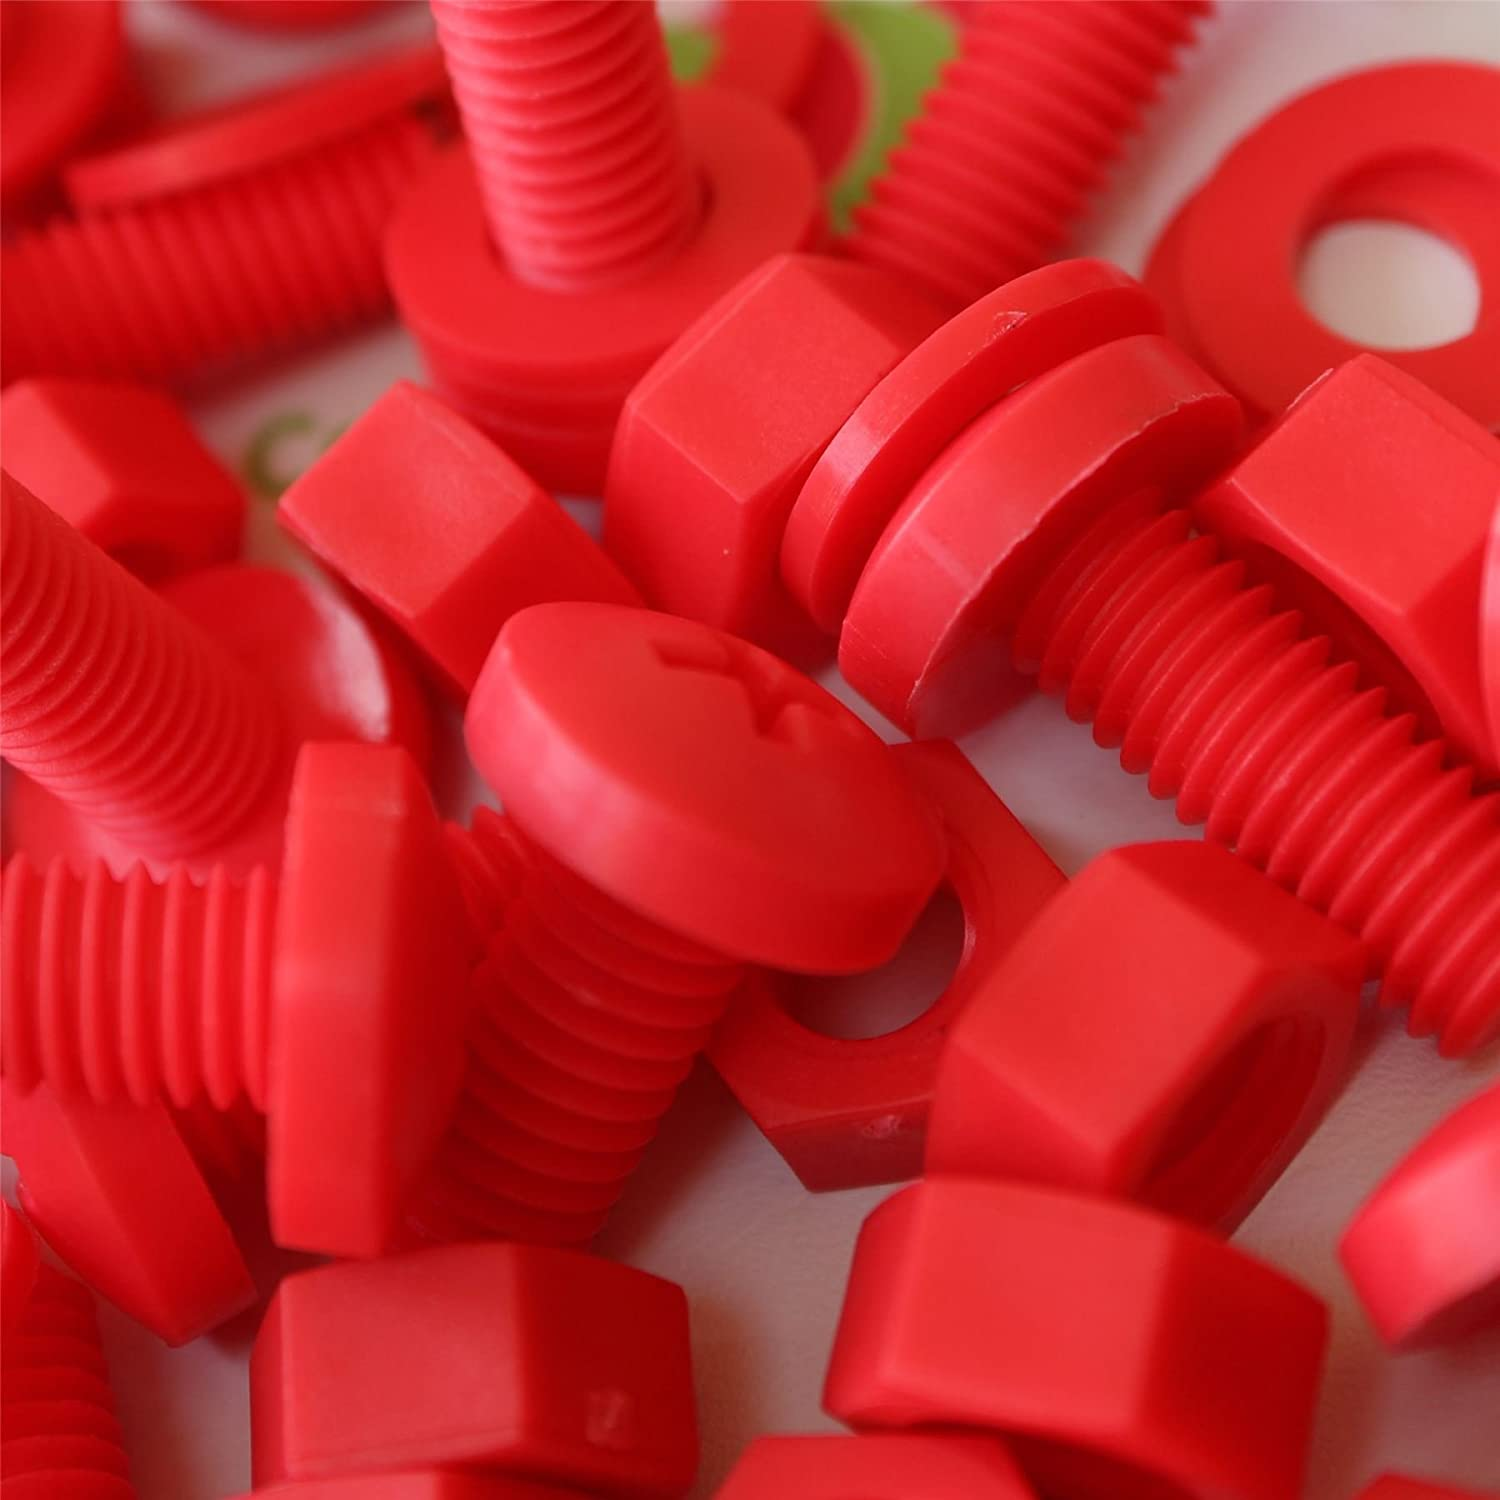 20 x Red Philips Pan Head Screws Polypropylene (PP) Plastic Nuts and Bolts, M8 x 20mm, Washers, Acrylic, Water Resistant, Anti-Corrosion, Chemical Resistant, Electrical Insulator, Strong. Caterpillar Red